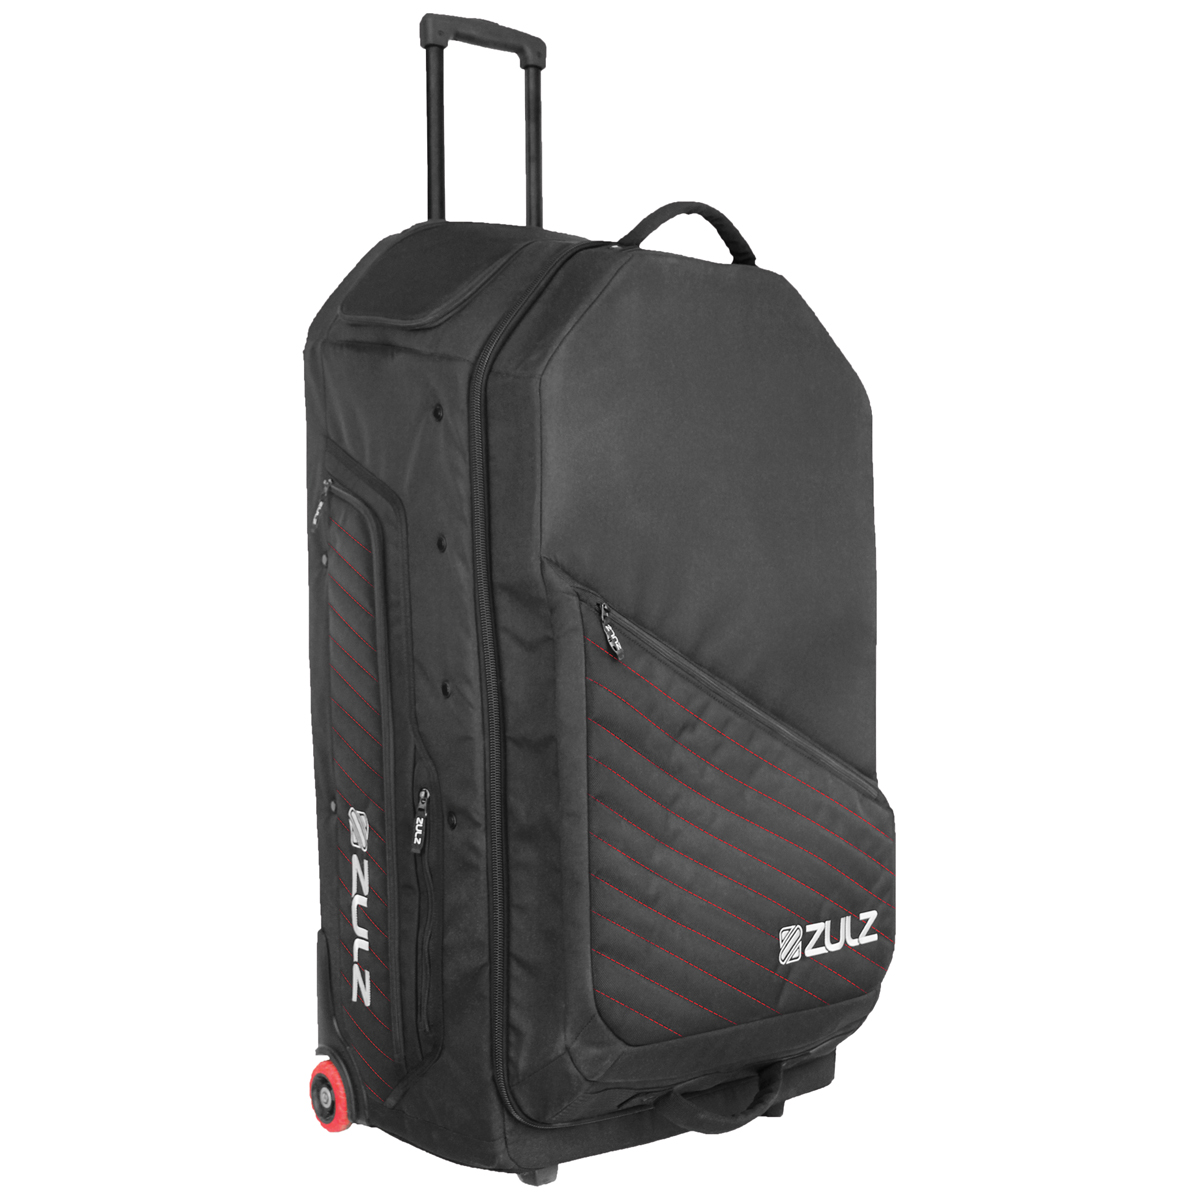 Zulz Zeus Black/Red Gearbag